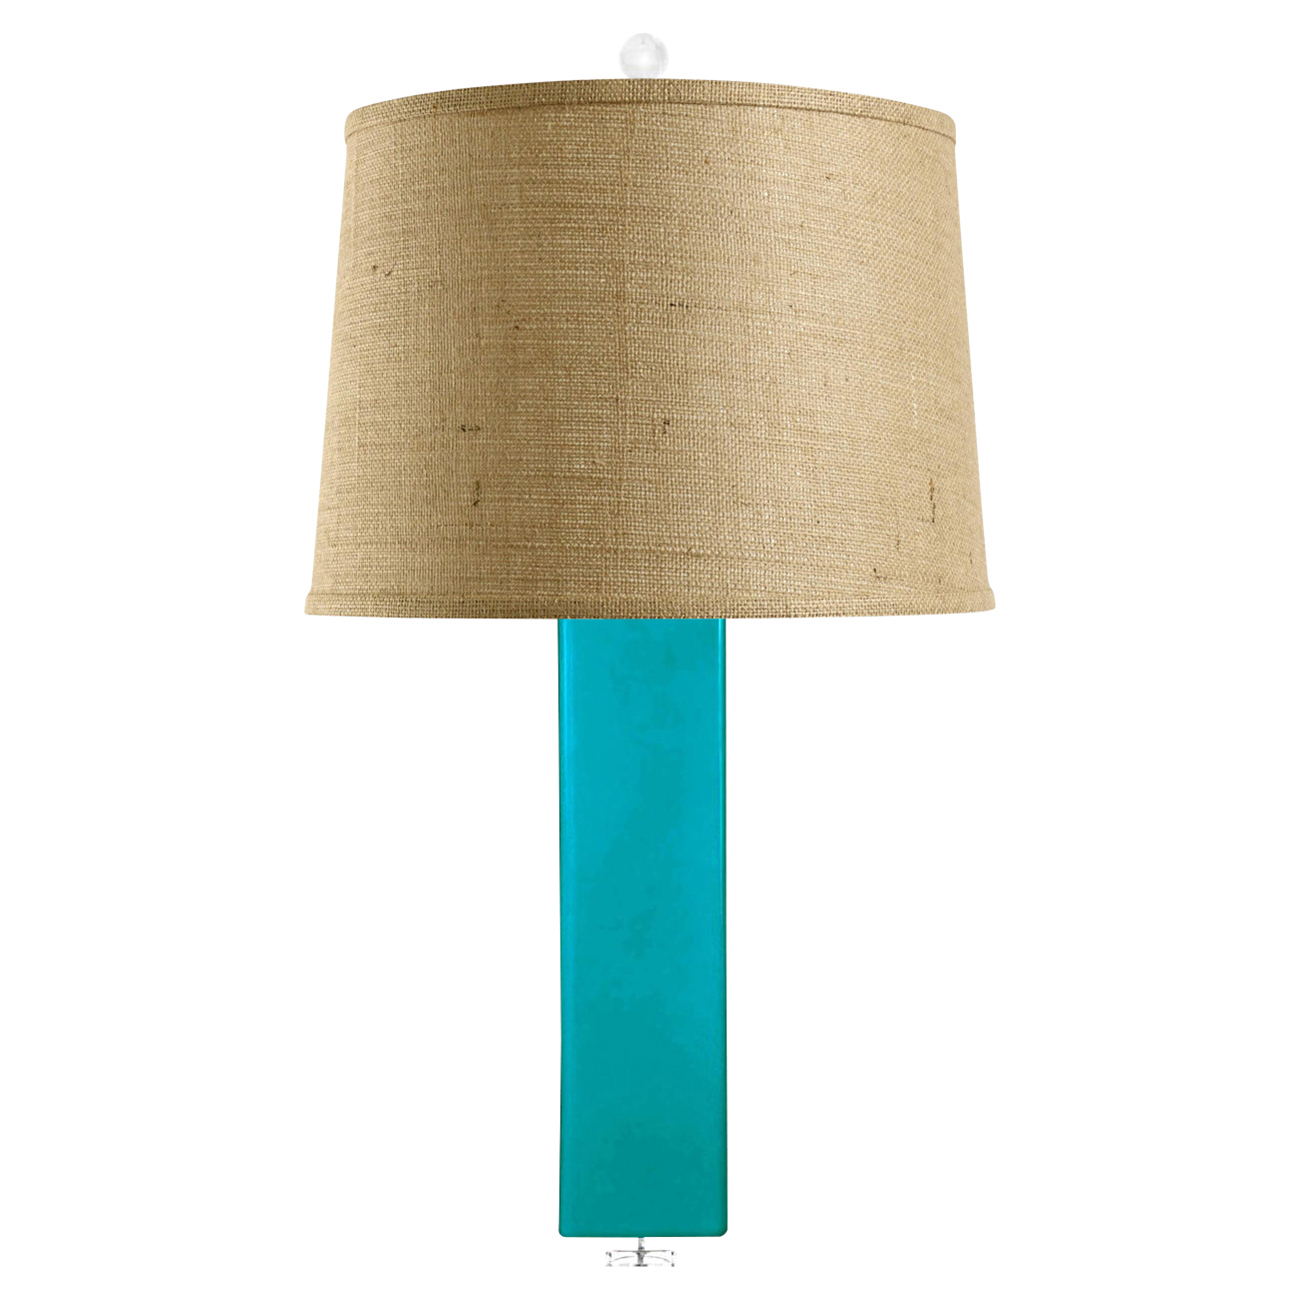 Pula Coastal Rectangle Column Turquoise Ceramic Burlap Table Lamp